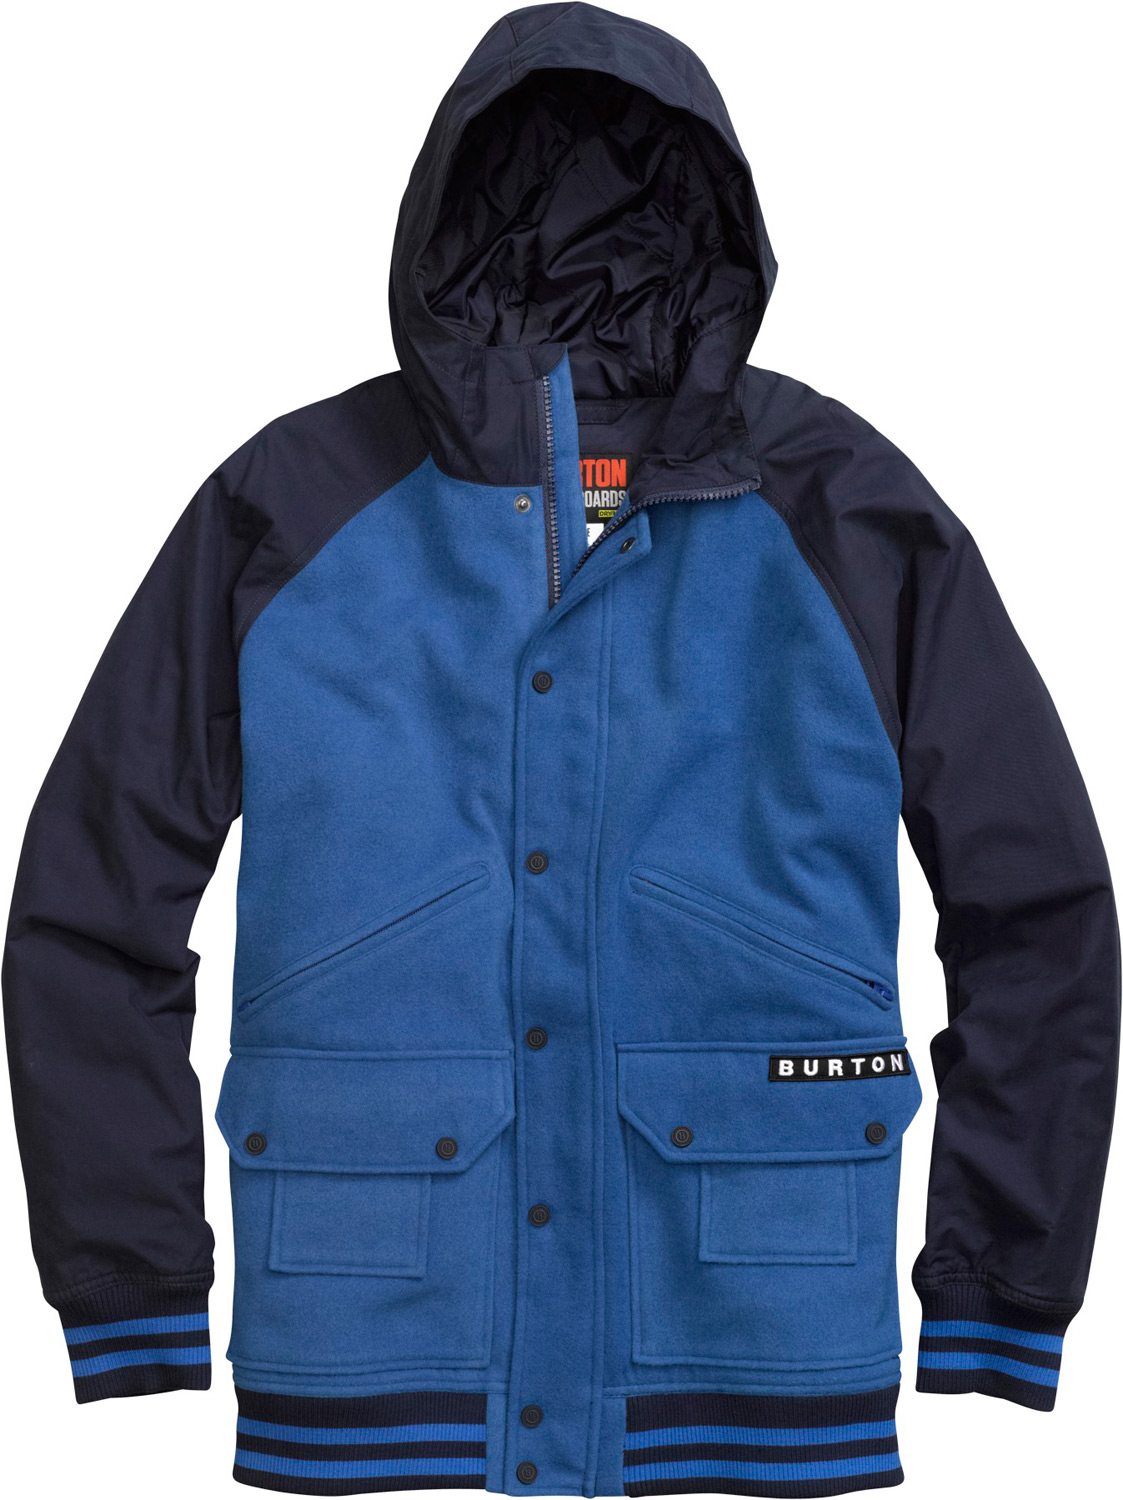 Snowboard Varsity jacket with elemental resistance and a diamond quilted lining.* Sig Fit * DRYRIDE Thermex Wool-Like Woven Polyester Body with Cotton/ Polyester Blended Sleeves/ Hood and Mist-Defy * Diamond Quilted Taffeta Lining with Thermacore Insulation [100g Body/ 60g Sleeves] * Zip and Button-Up Center Front Closure * Zippered Handwarmer Pockets * Interior Sound Pocket * Chafe-Free Chin Guard - $71.95